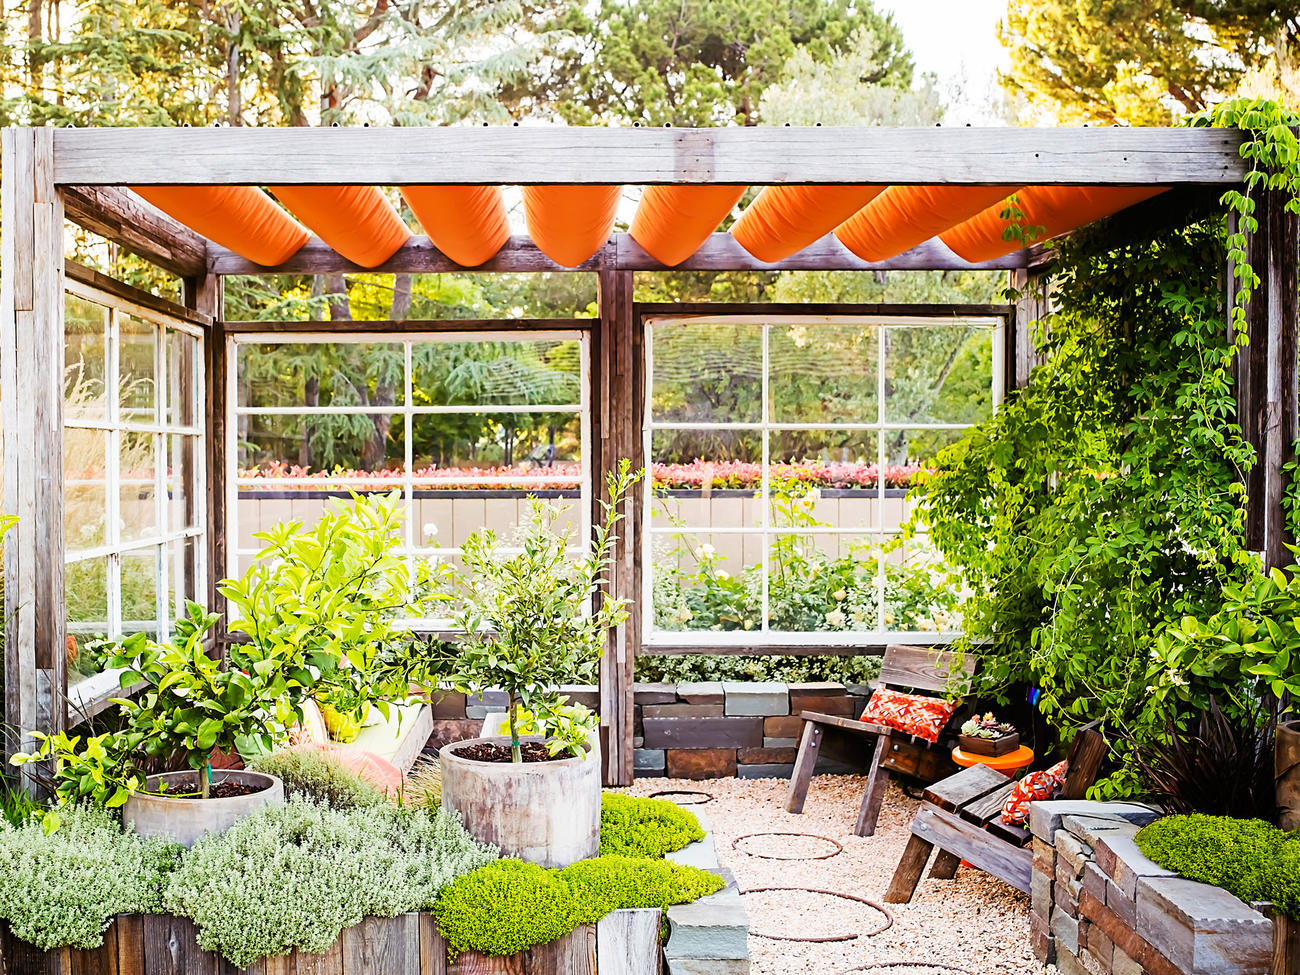 Great Ideas for Outdoor Rooms - Sunset.com - Sunset Magazine on garden irrigation ideas, sunset magazine landscaping ideas, sunset party ideas, diy container gardening ideas, southern california landscape ideas, sunset decorating ideas, sunset magazine garden, sunset magazine container gardening, garden and outdoor living ideas, sunset bbq ideas, sunset patios, sunset room ideas, sunset furniture, sunset bathroom ideas, sunset garden book, sunset picnic ideas, sunset summer, sunset design ideas, sunset storage ideas, sunset painting ideas,